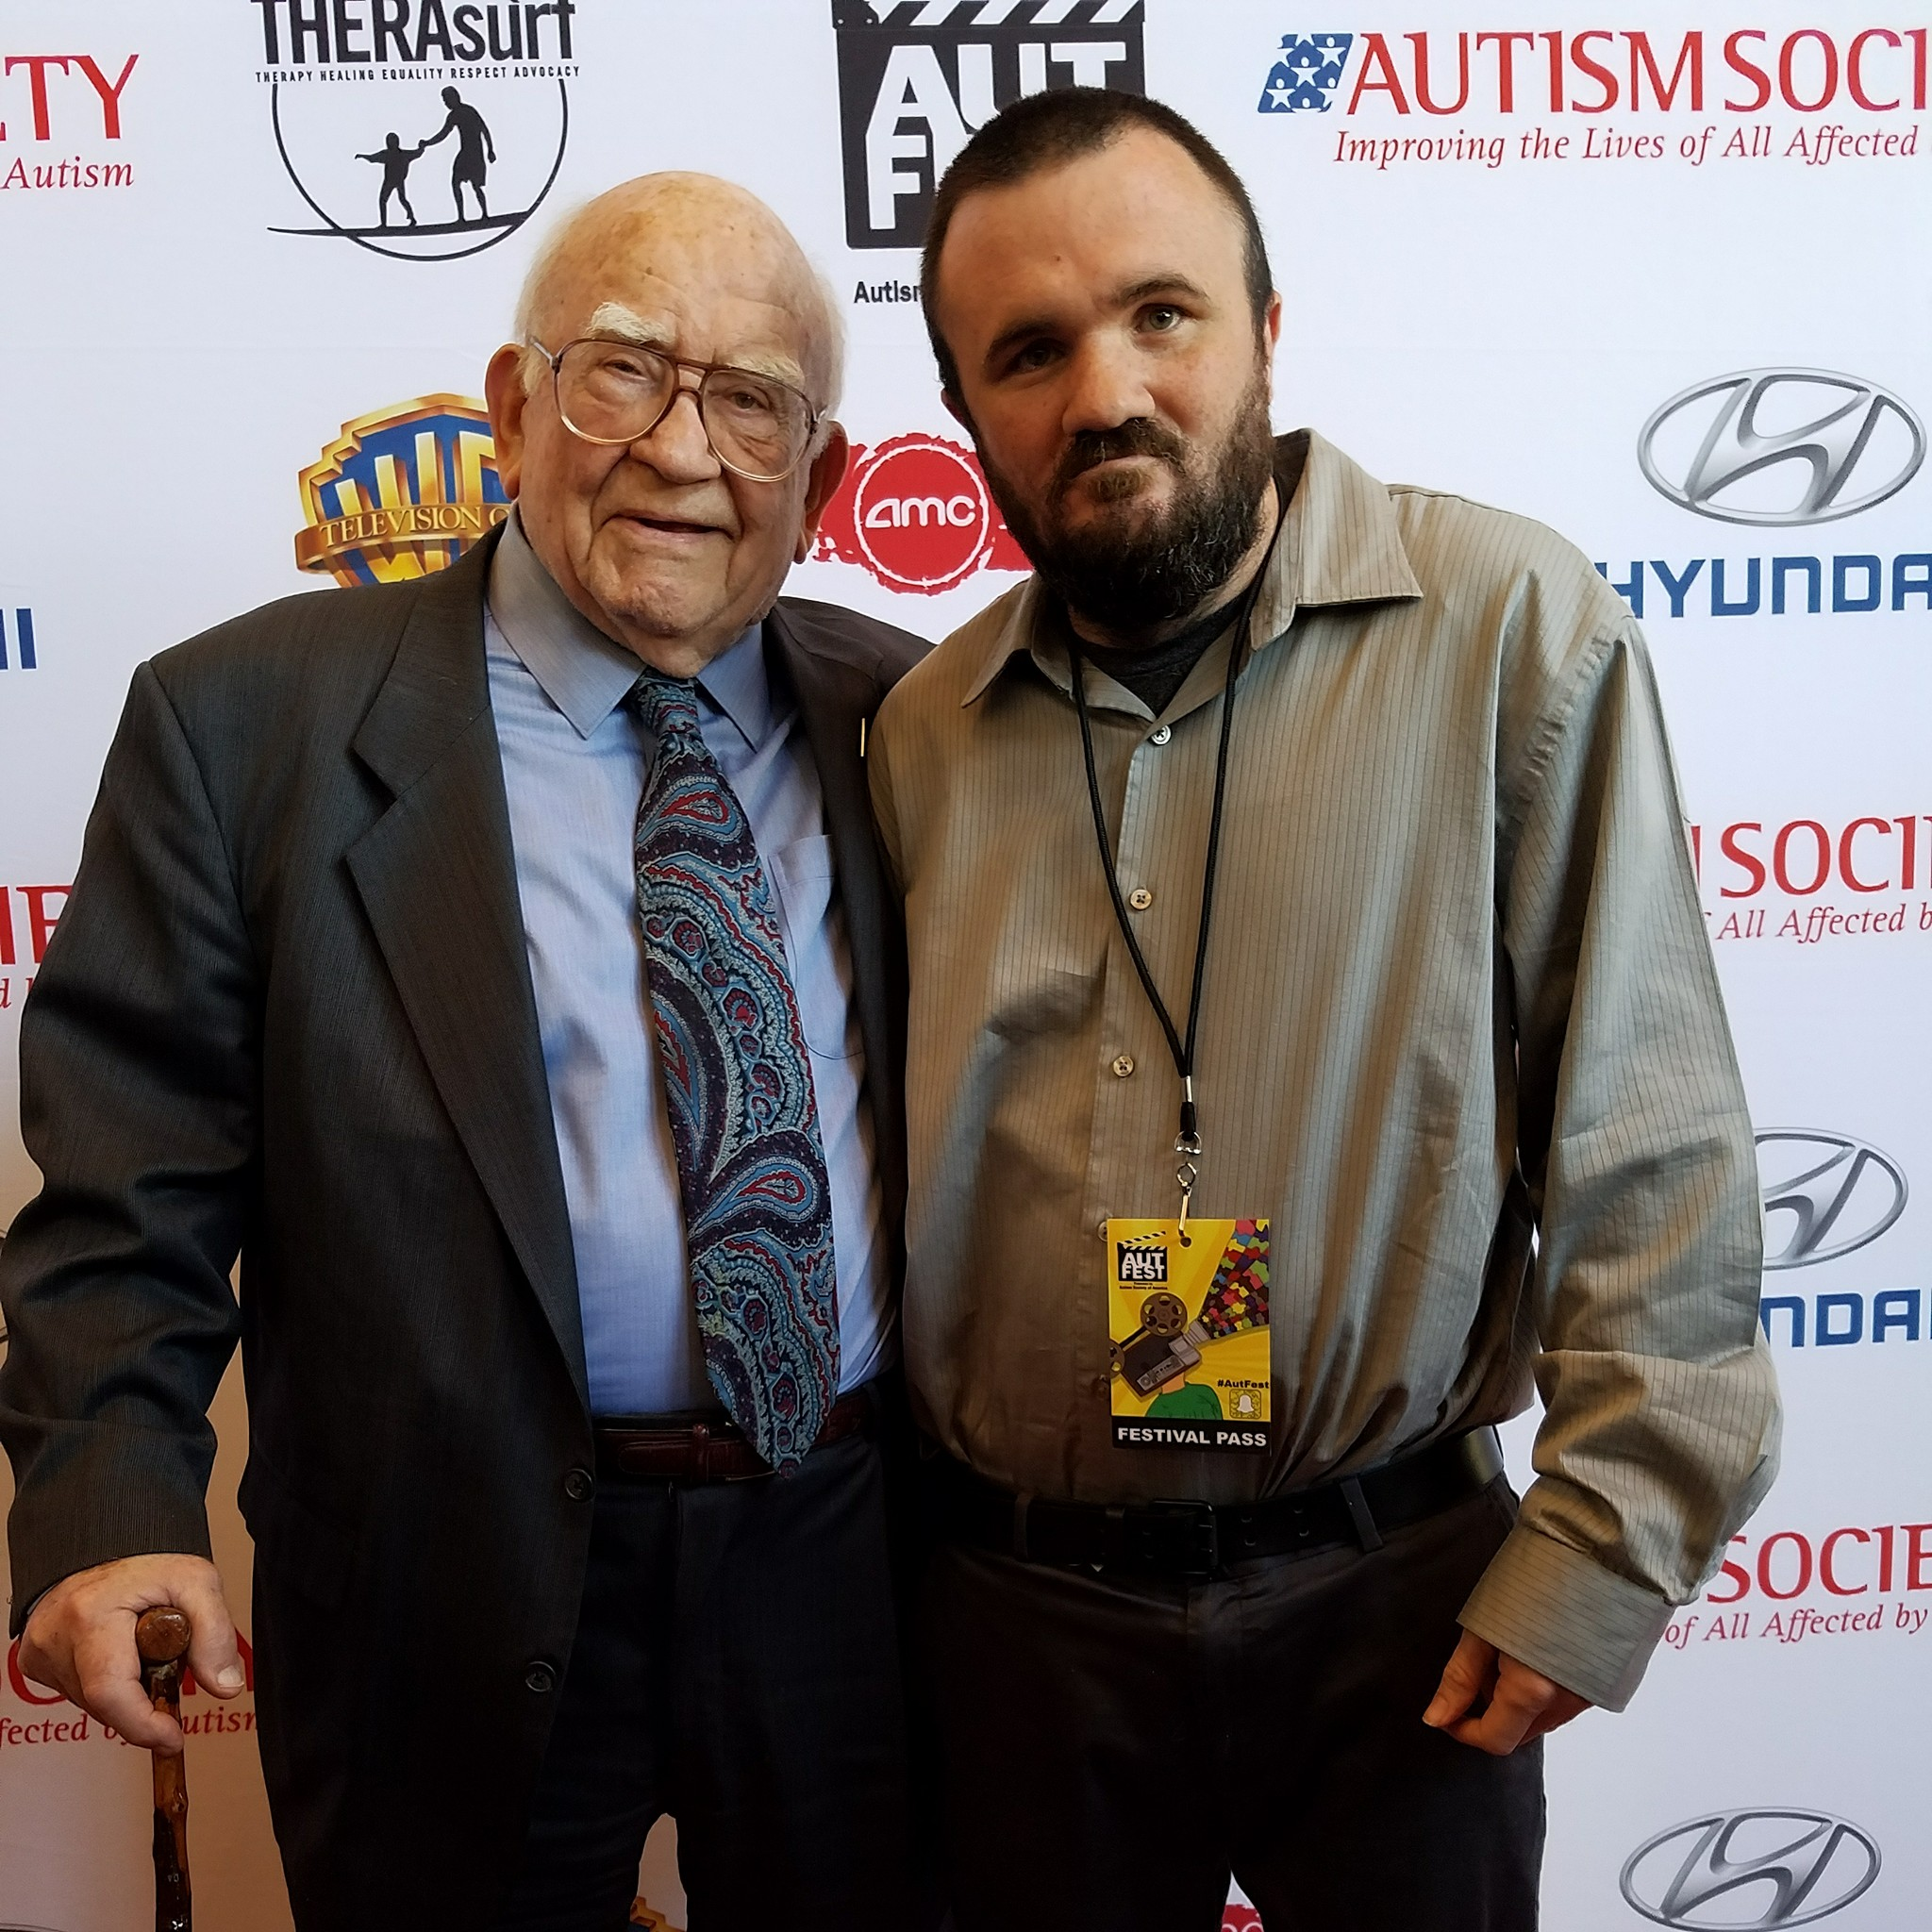 Dustin with Ed Asner